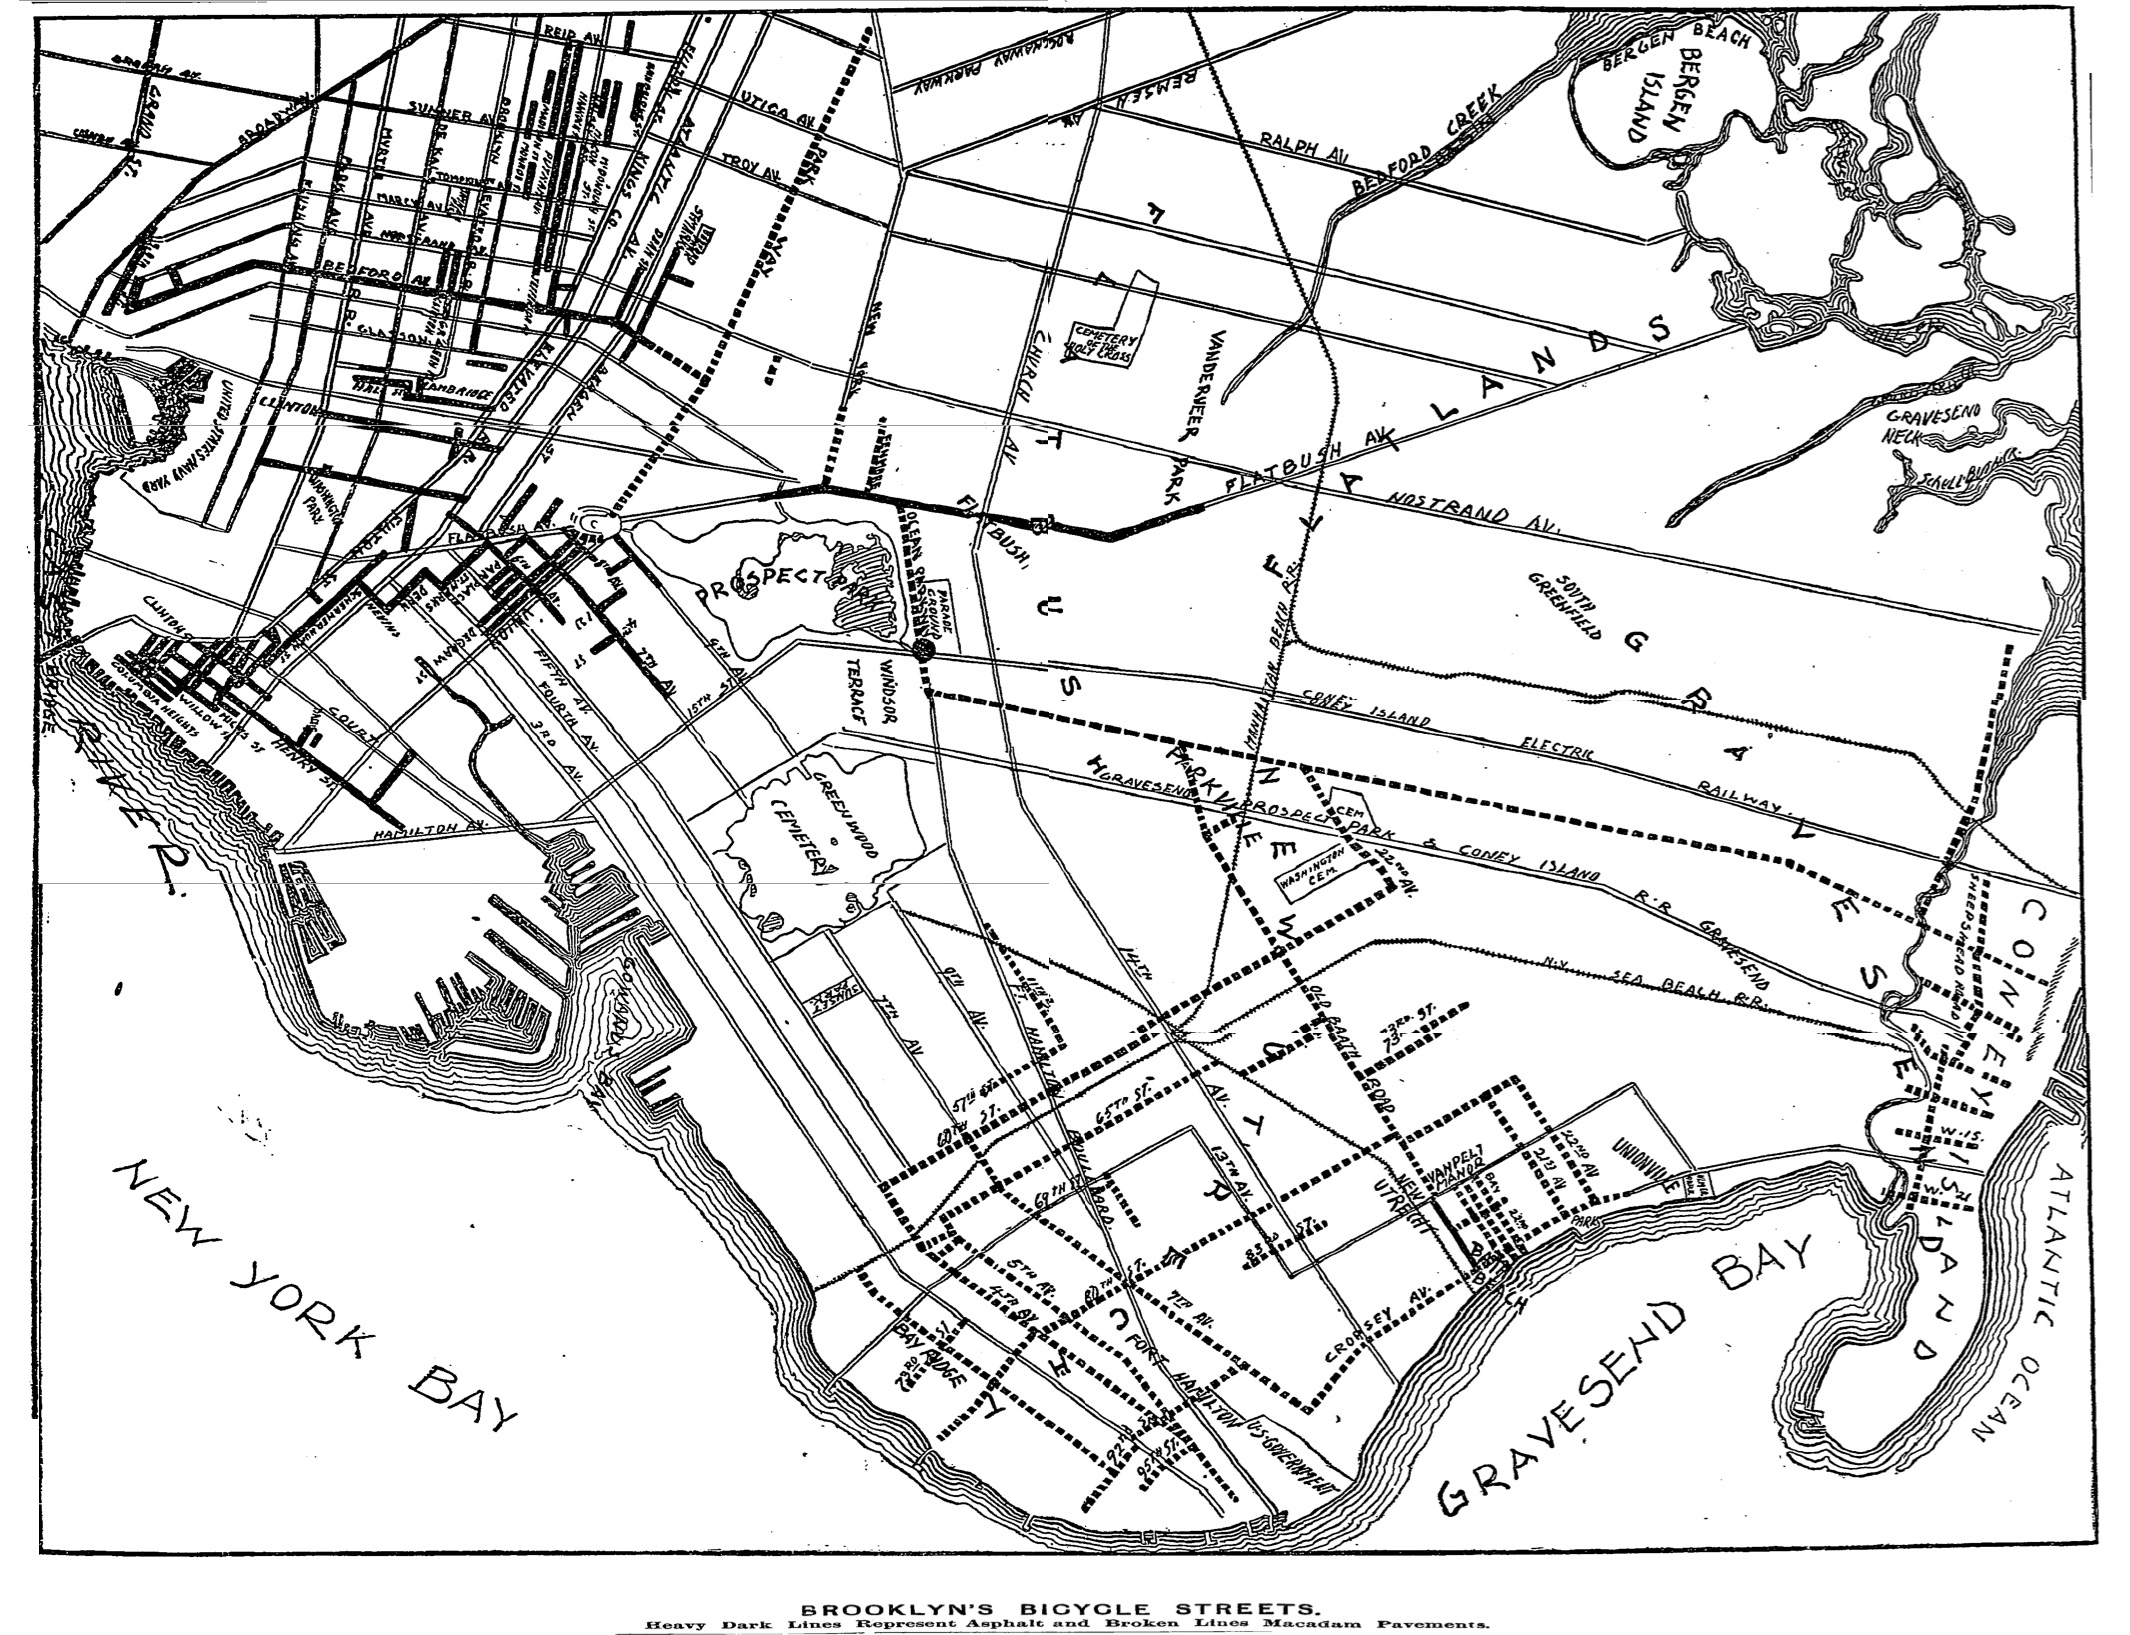 New York City once had the best bike path in the world